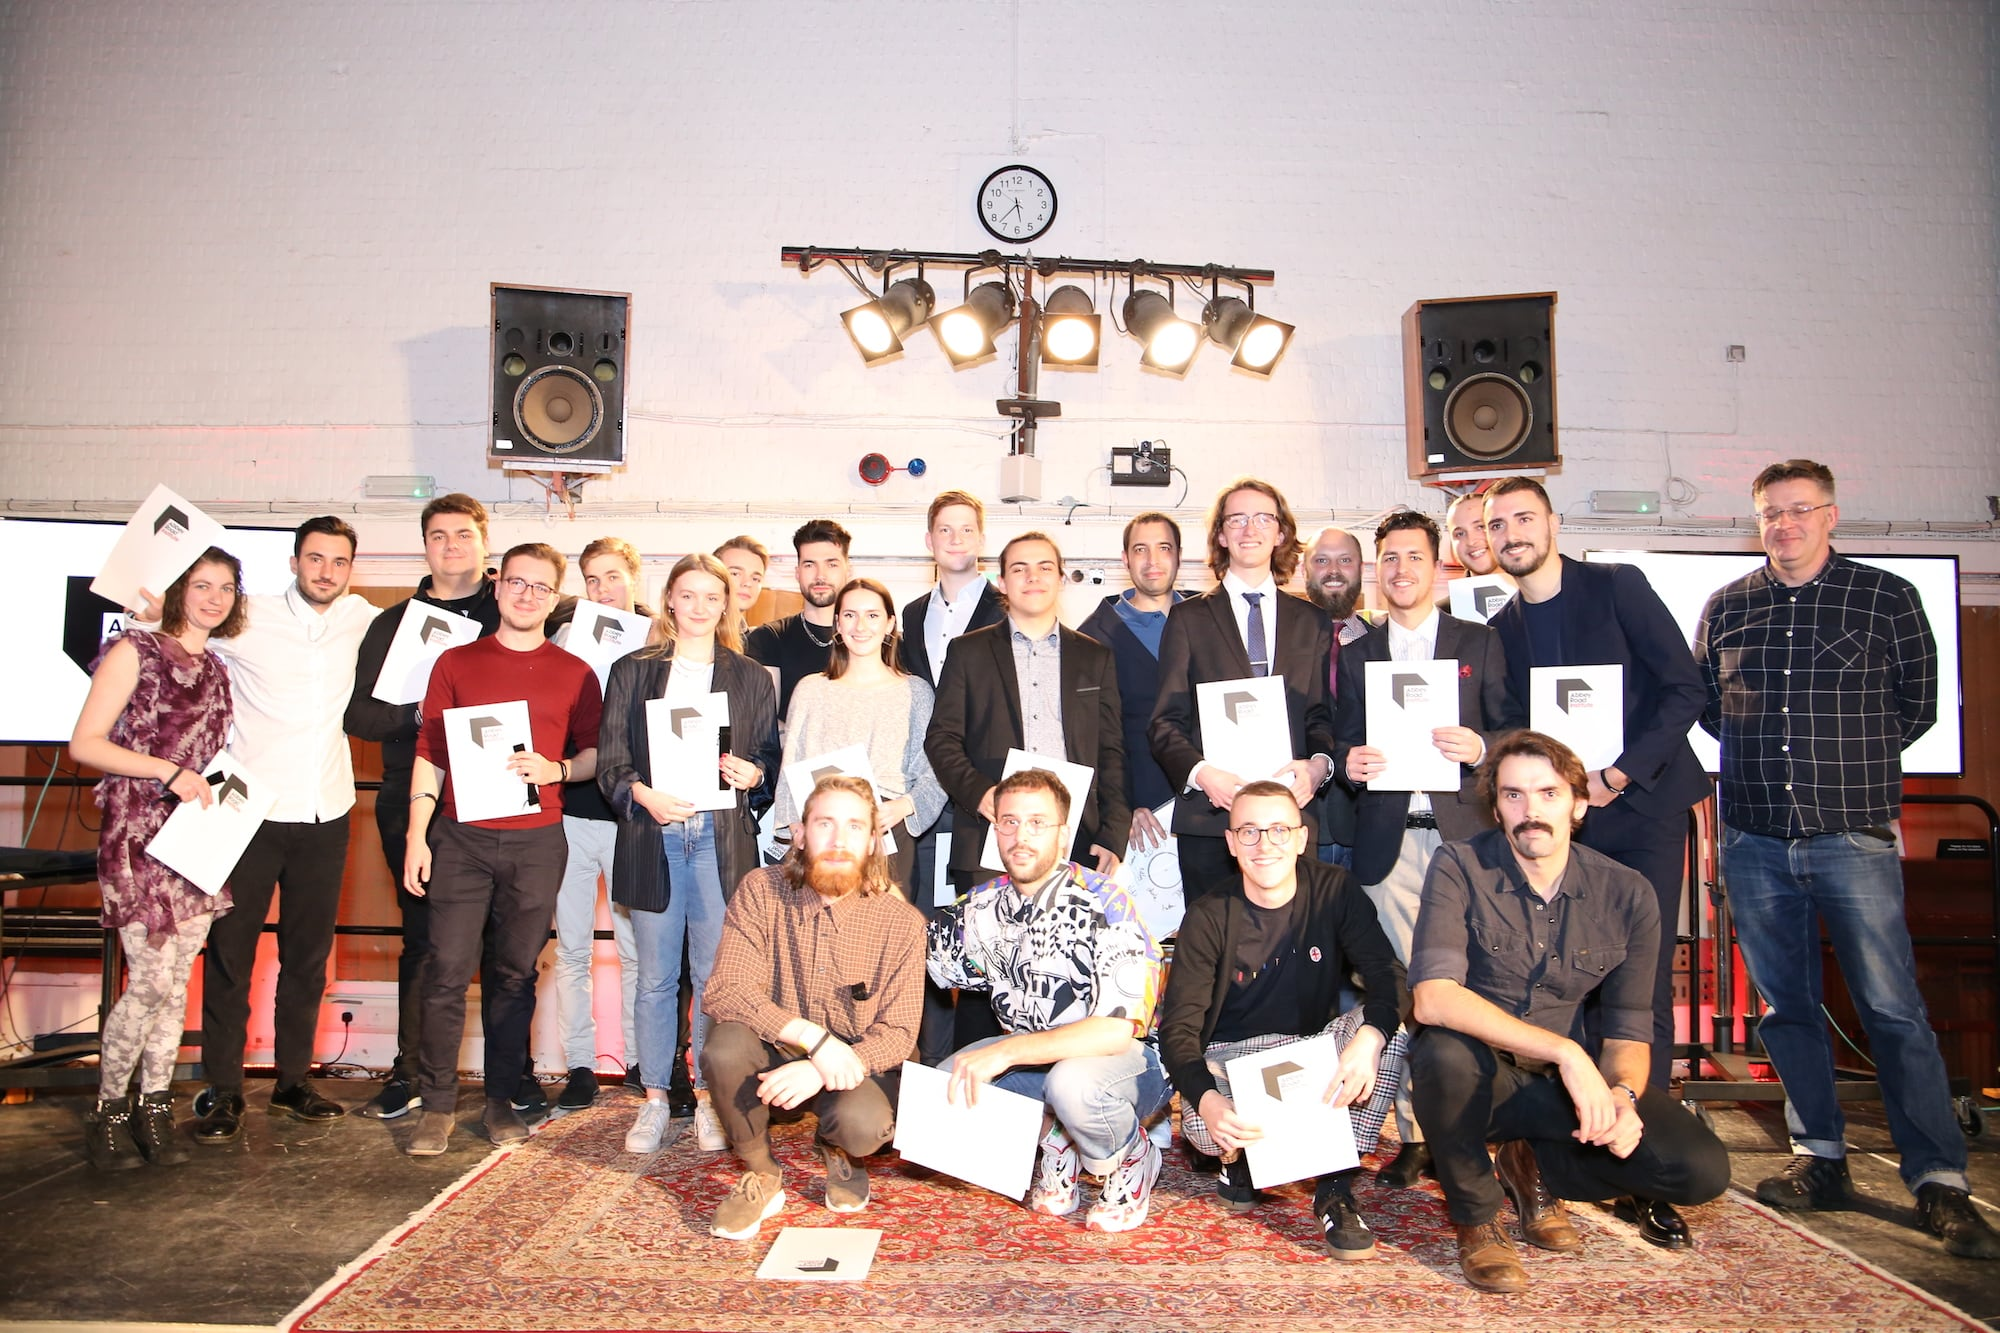 Group picture of the Abbey Road Institute Berlin students